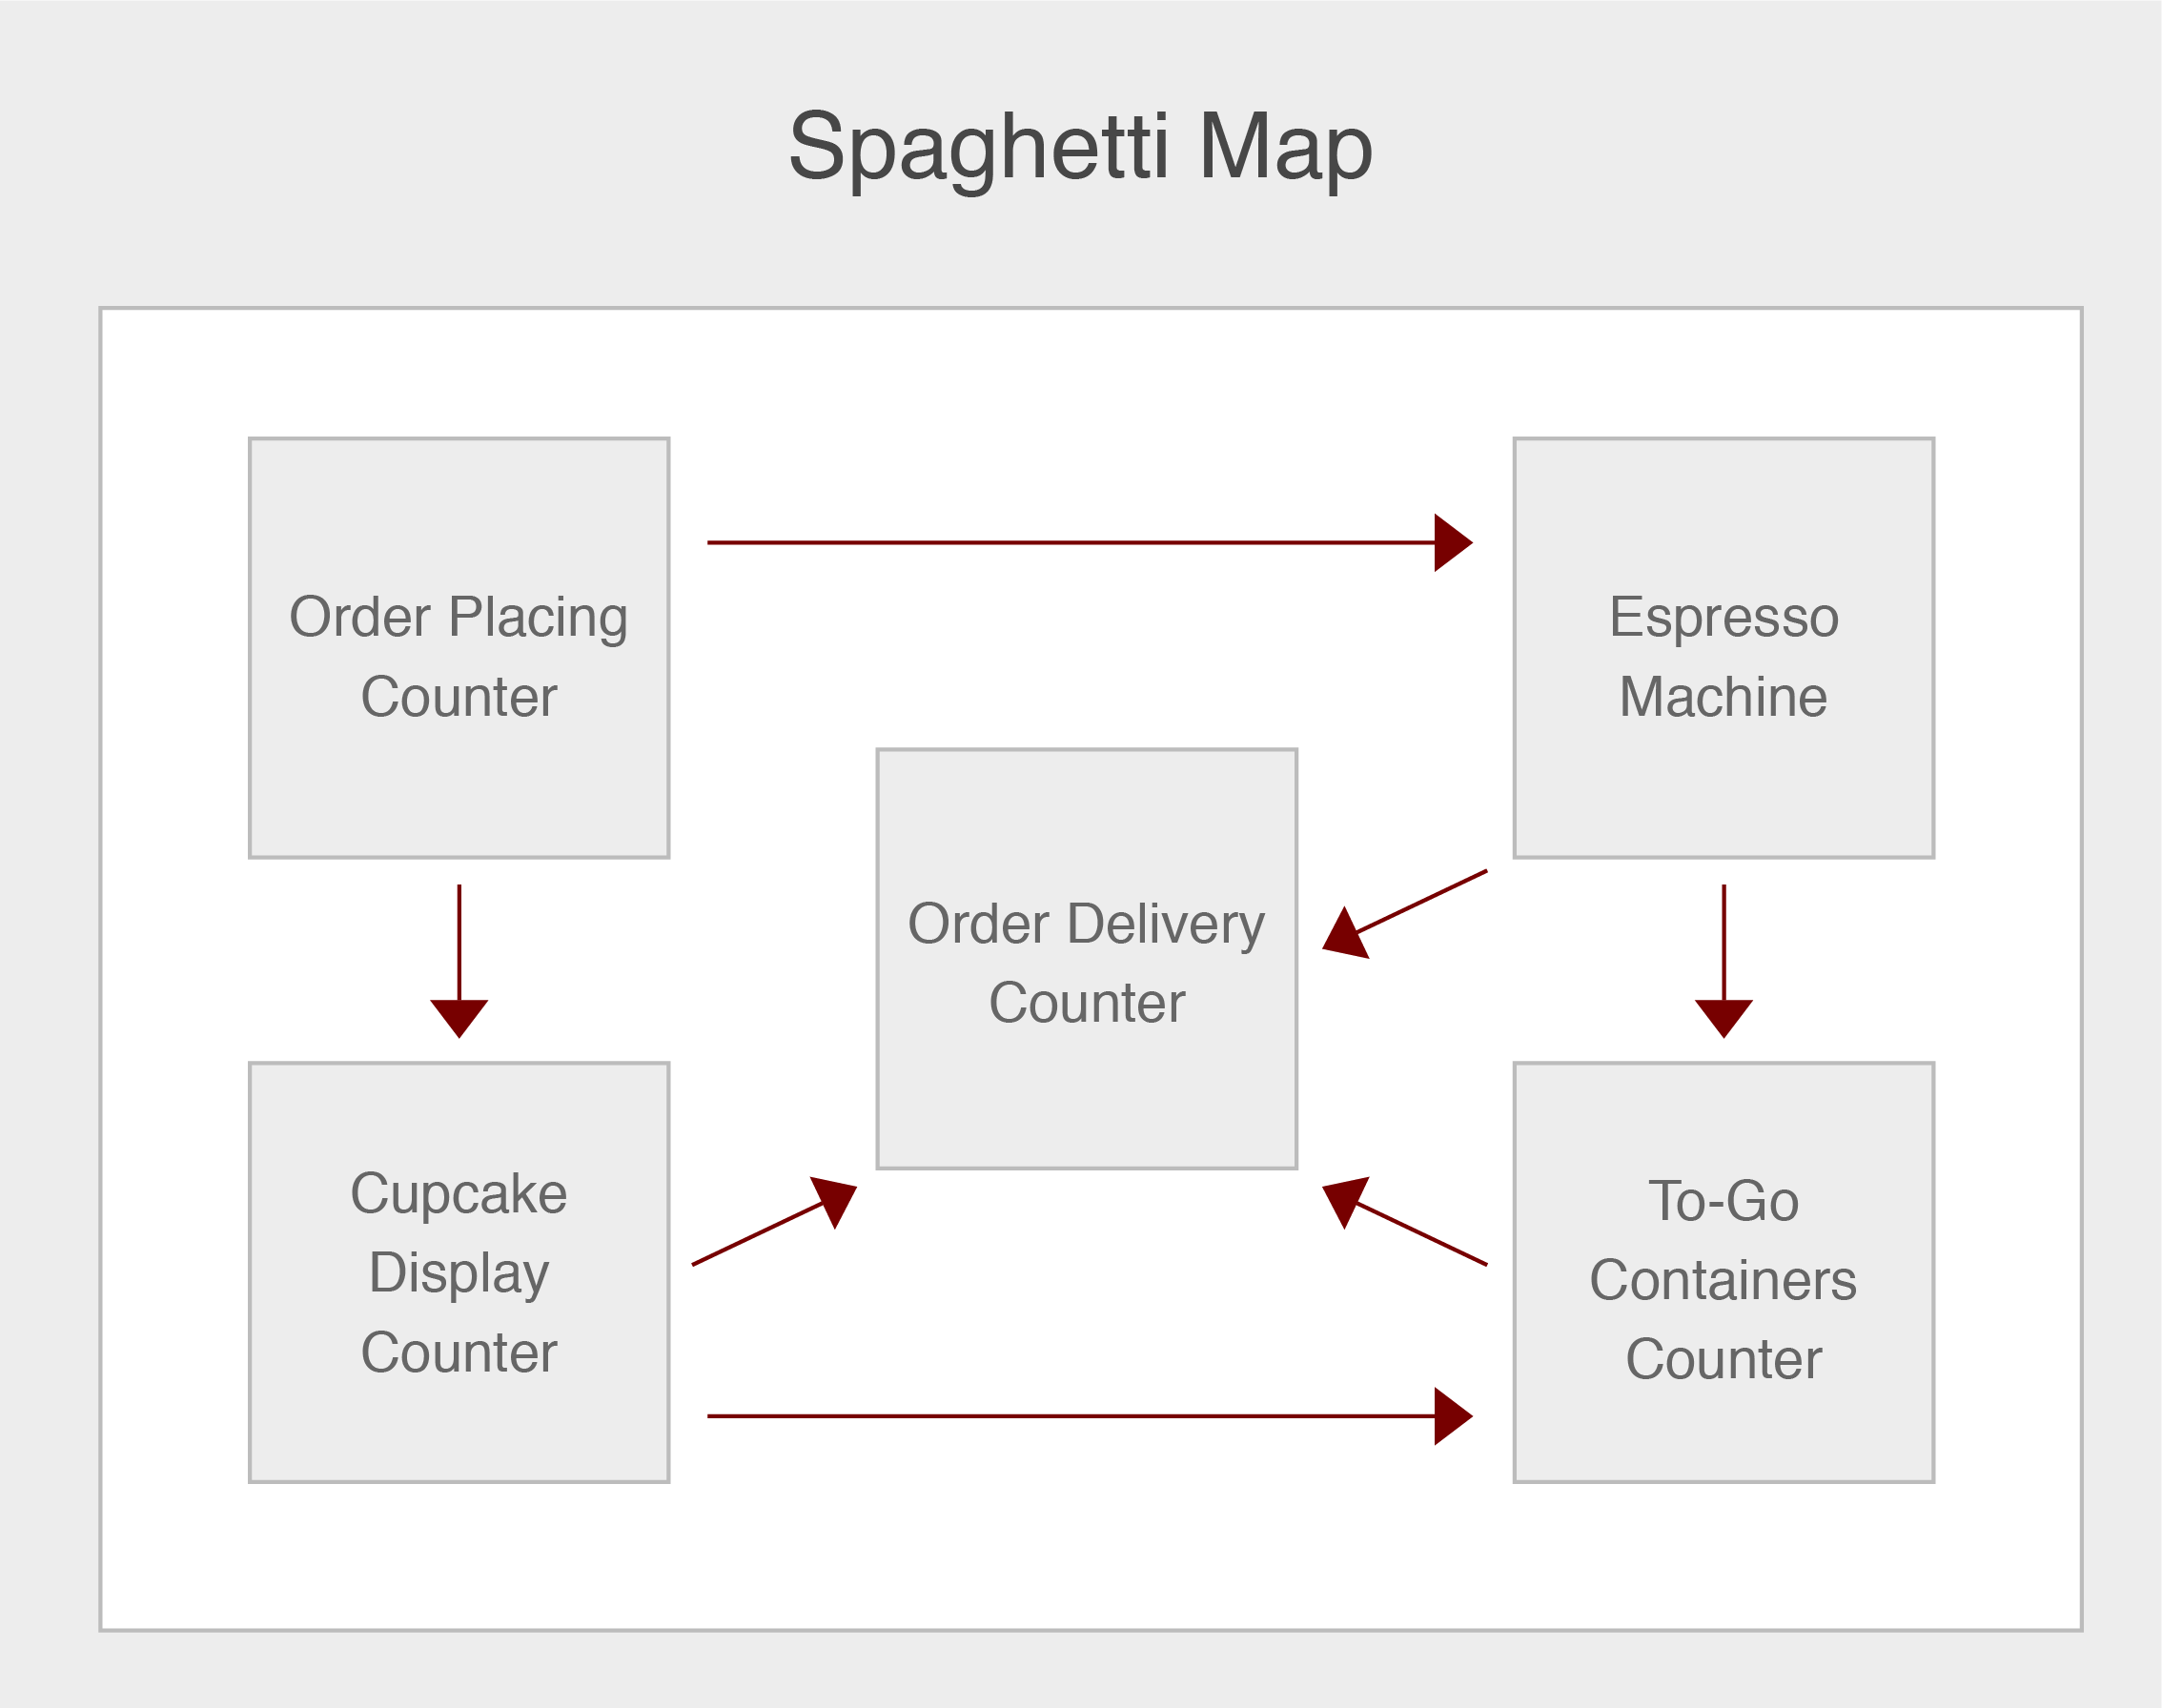 A sample spaghetti map showing the physical flow of a cupcake shop.